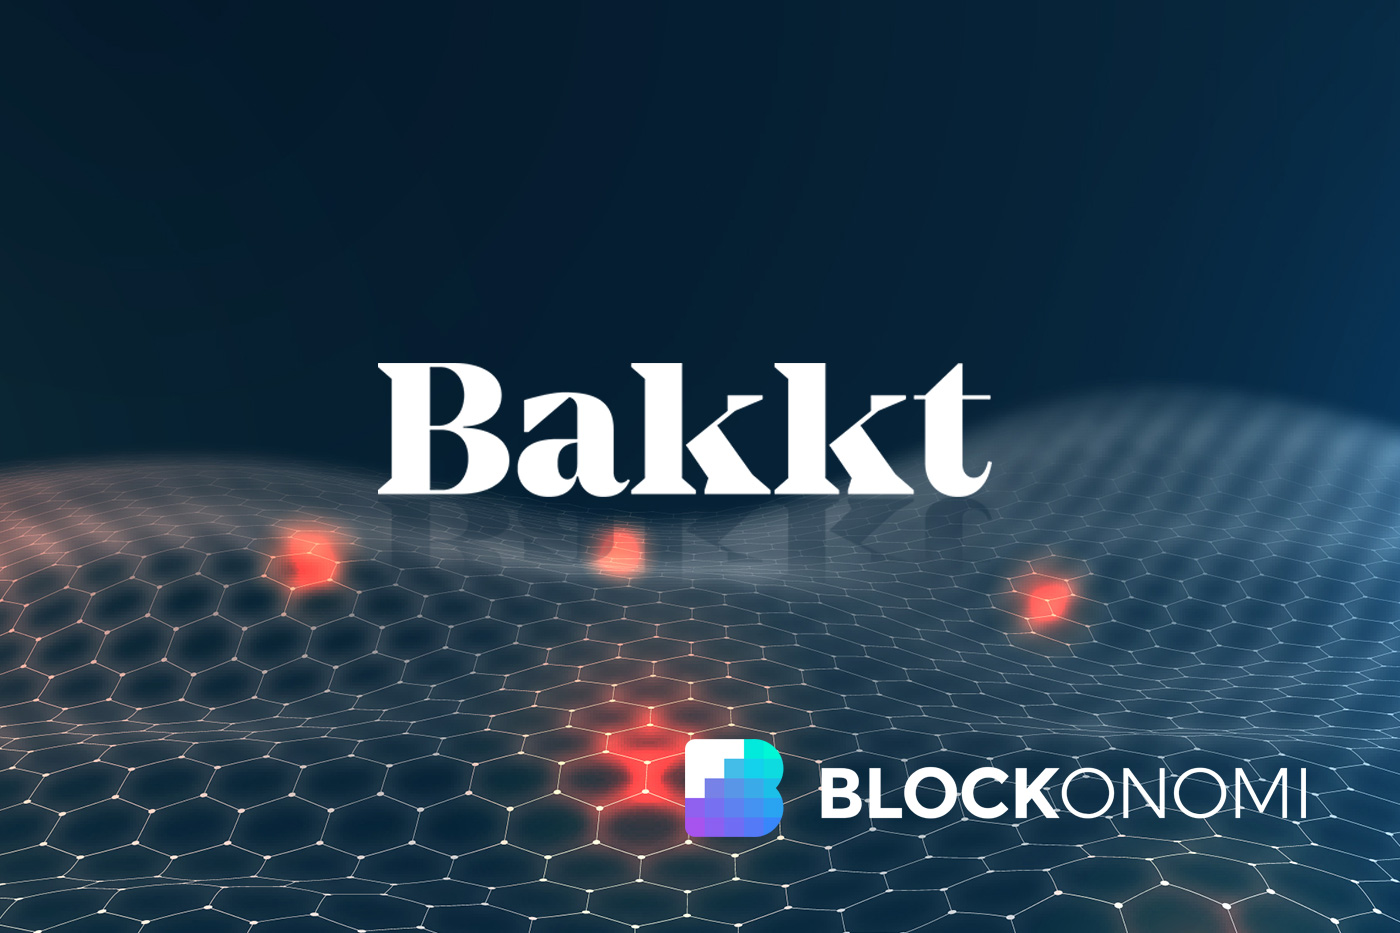 Warning: Impersonators Create Fake Bakkt Website to Steal Bitcoin